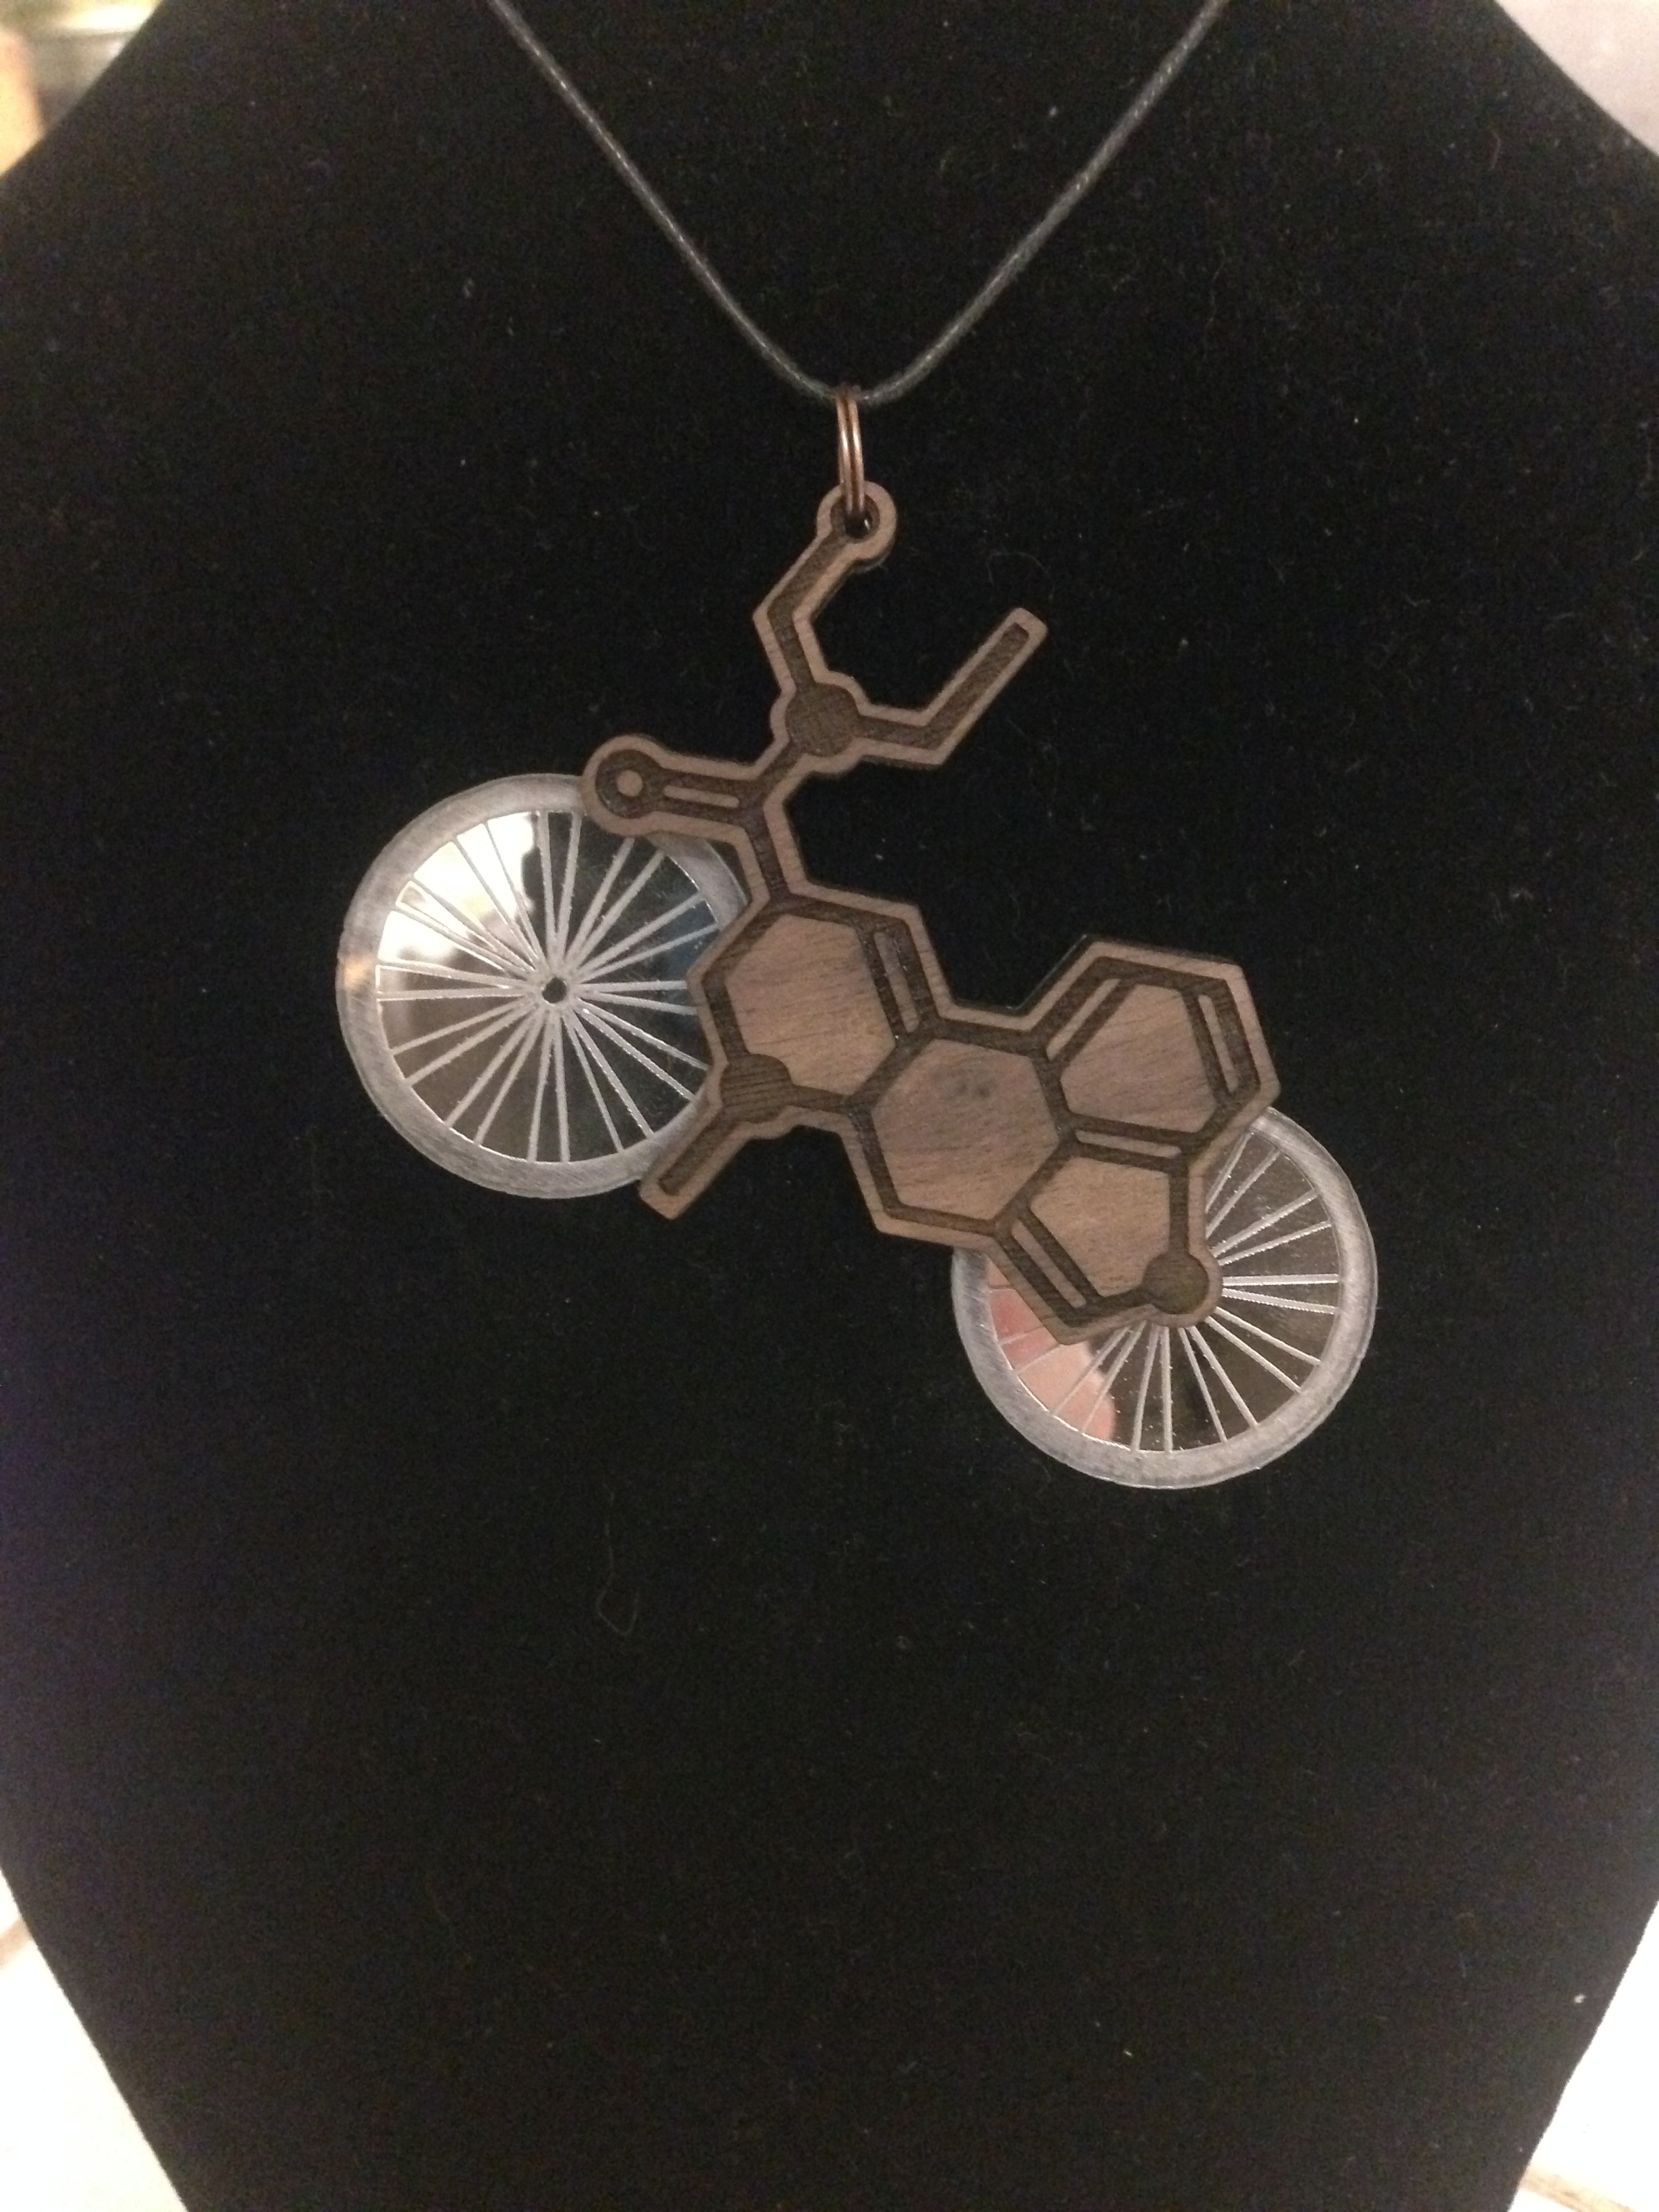 Bicycle Day LSD pendant